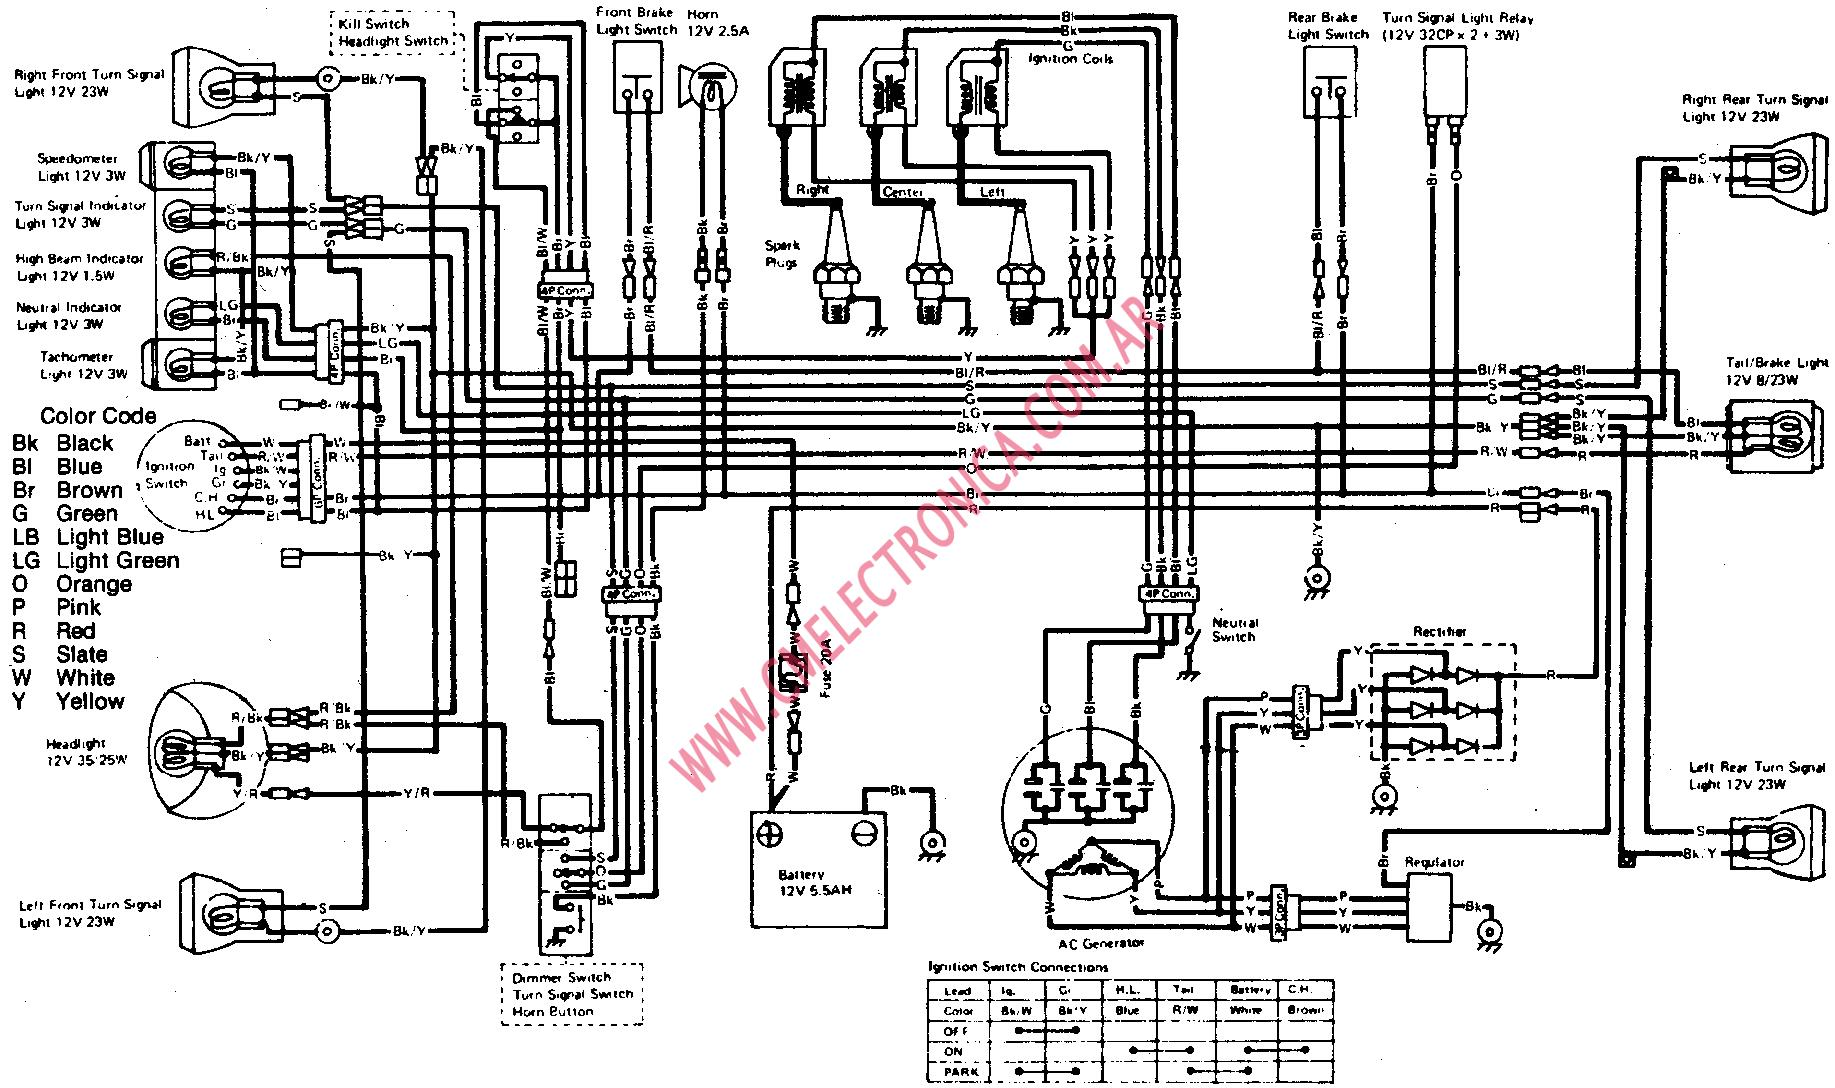 1990 Ford F 150 Fuel Pump Relay Location additionally Power Supply Circuit Diagram likewise Ford Ranger Fuel Pump Wiring Diagram moreover Honda Recon 250 Wiring Diagram further Kawasaki Bayou 300 Wiring Diagram. on honda 300 4x4 wiring diagram